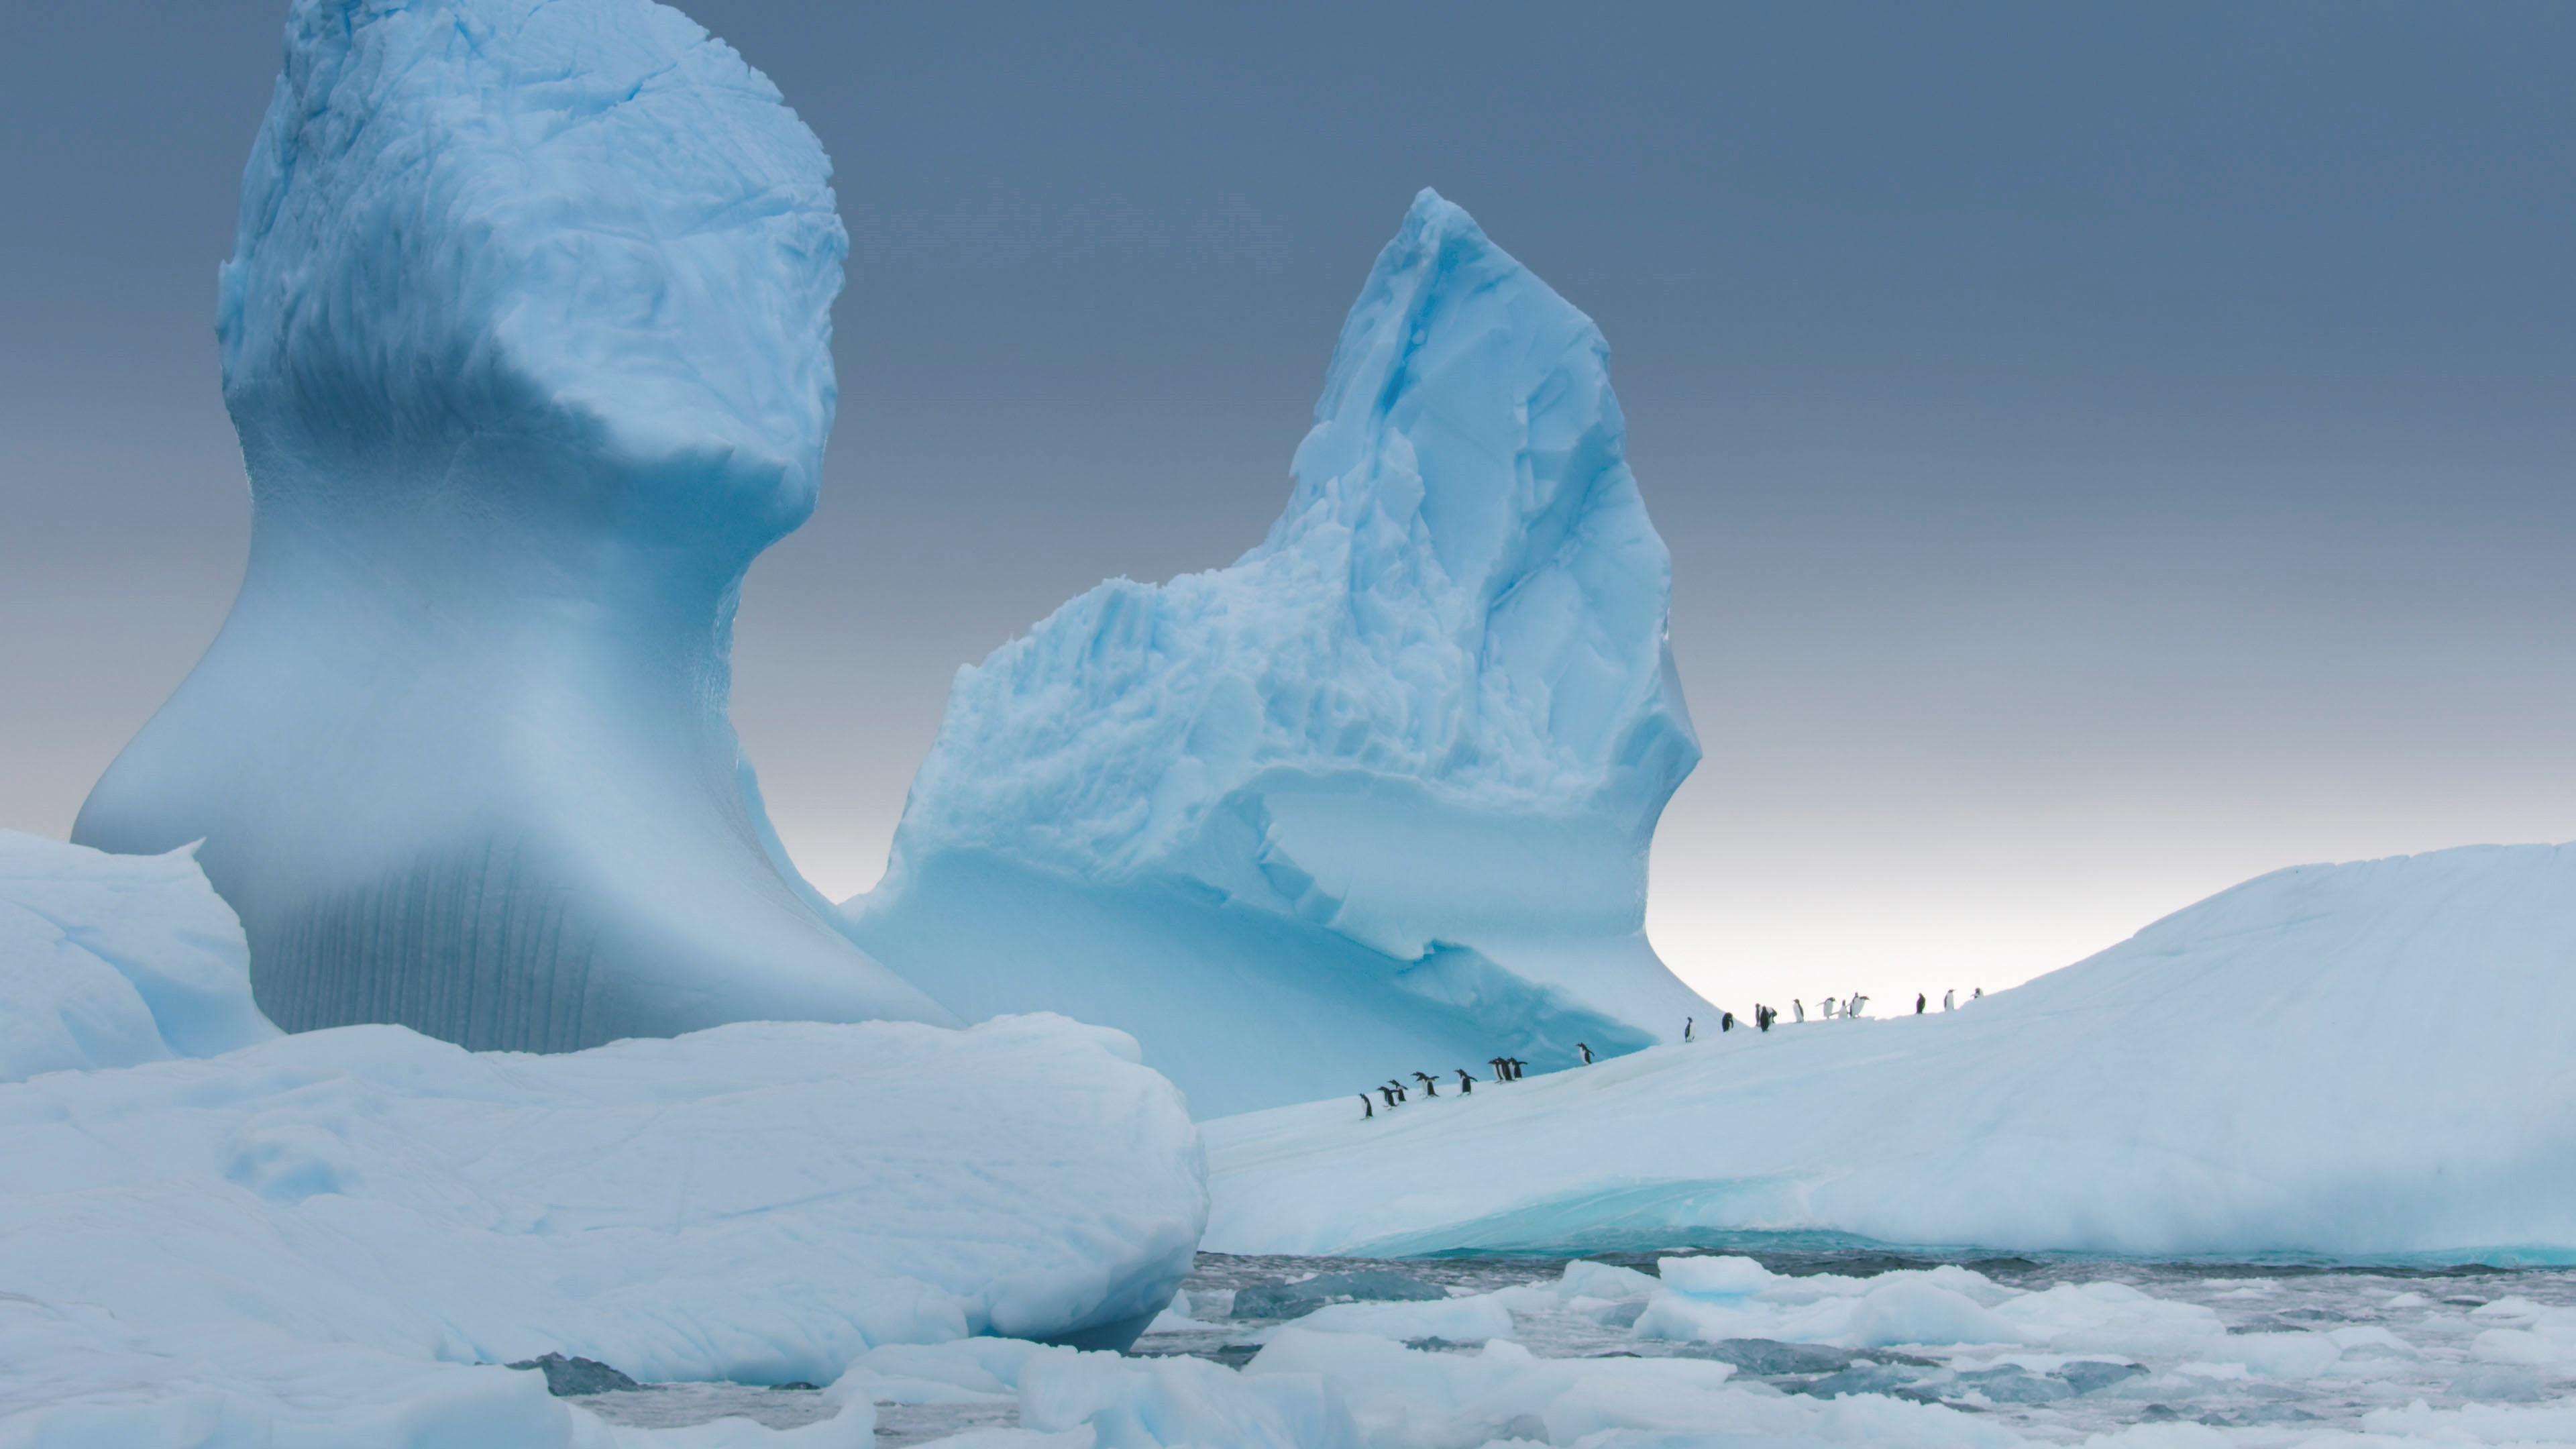 Gentoo penguins gather on an iceberg before heading out to sea to feed in the Antarctica episode of Seven Worlds, One Planet